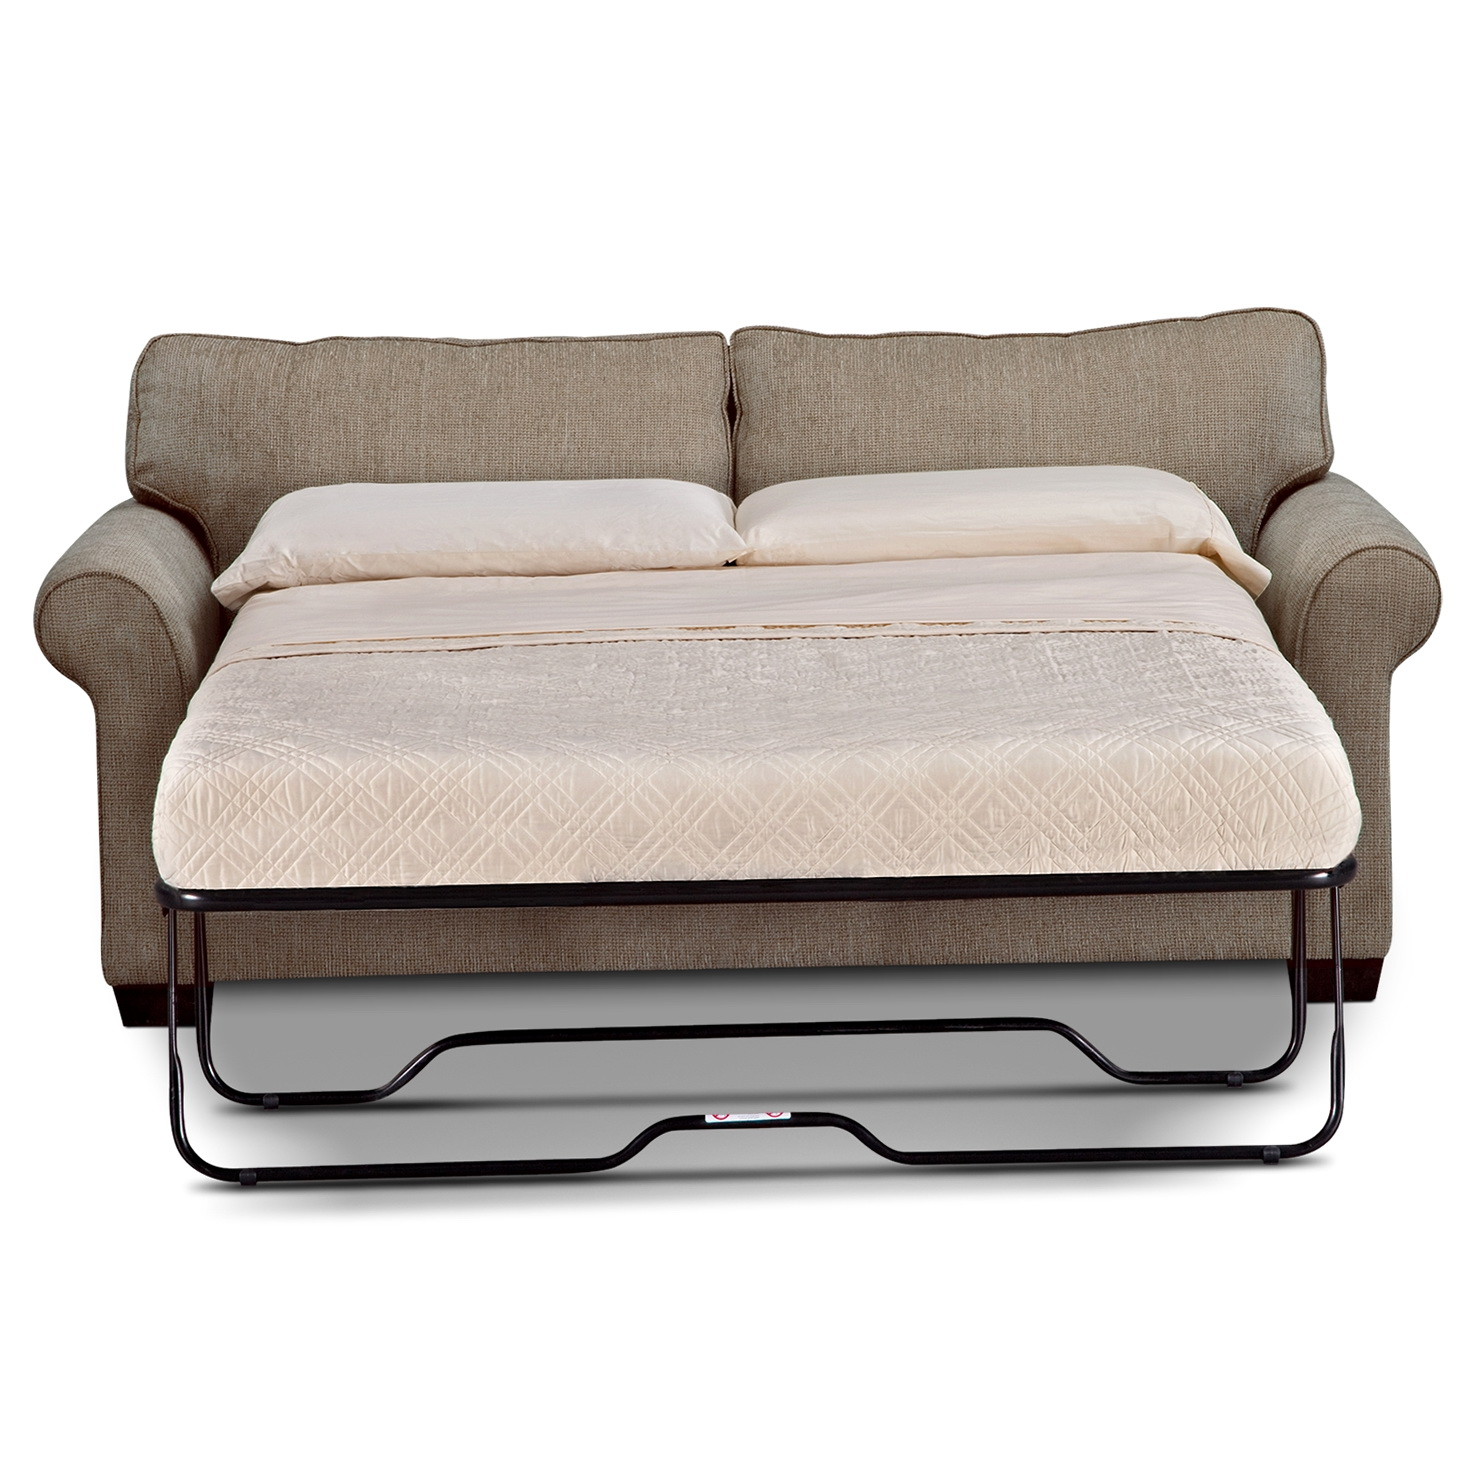 Full Sleeper Sofa Mattress